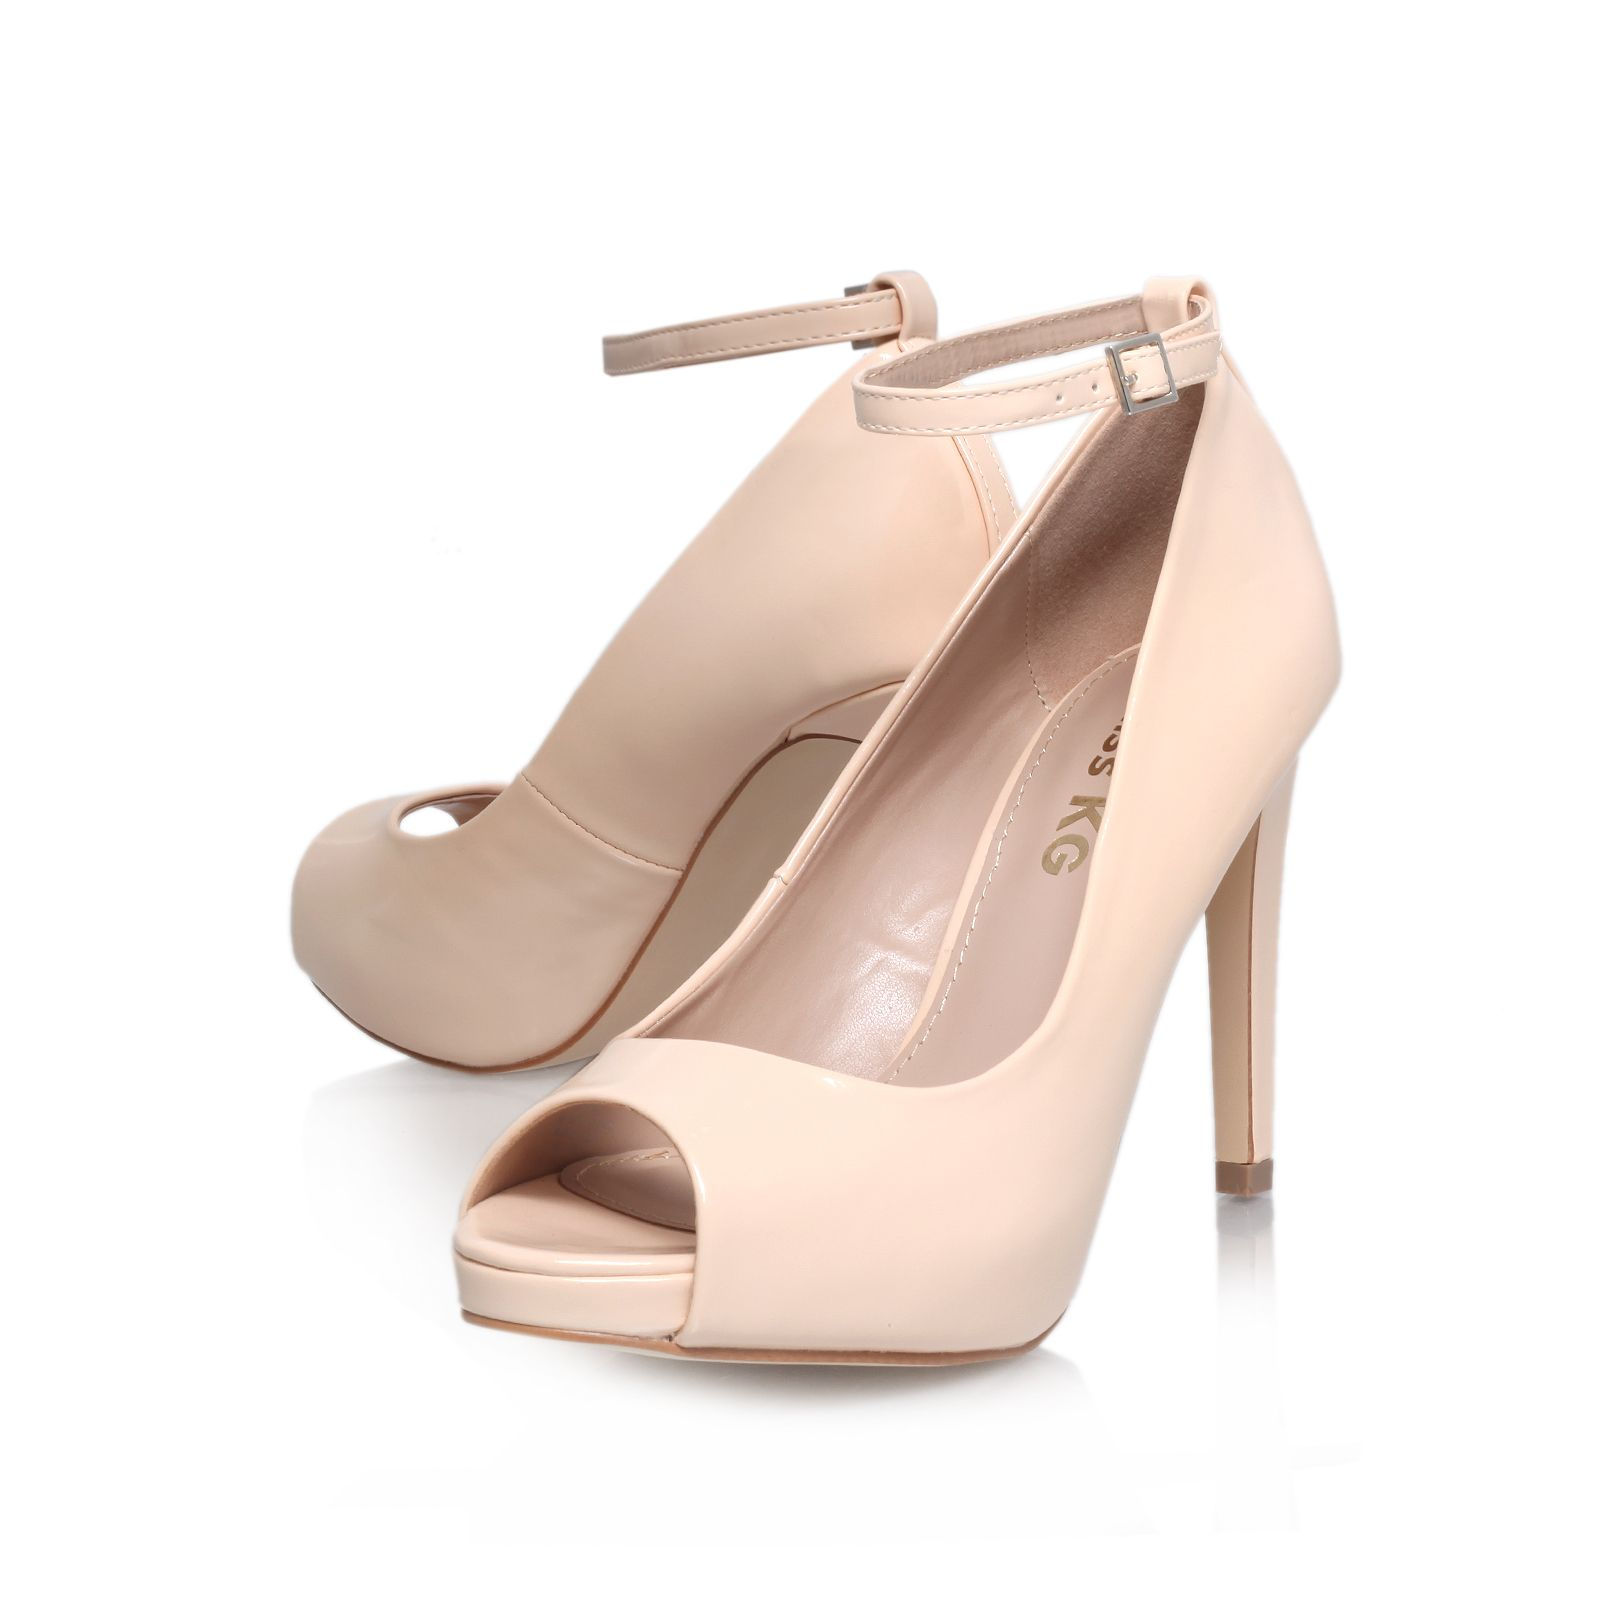 Anika high heel court shoes